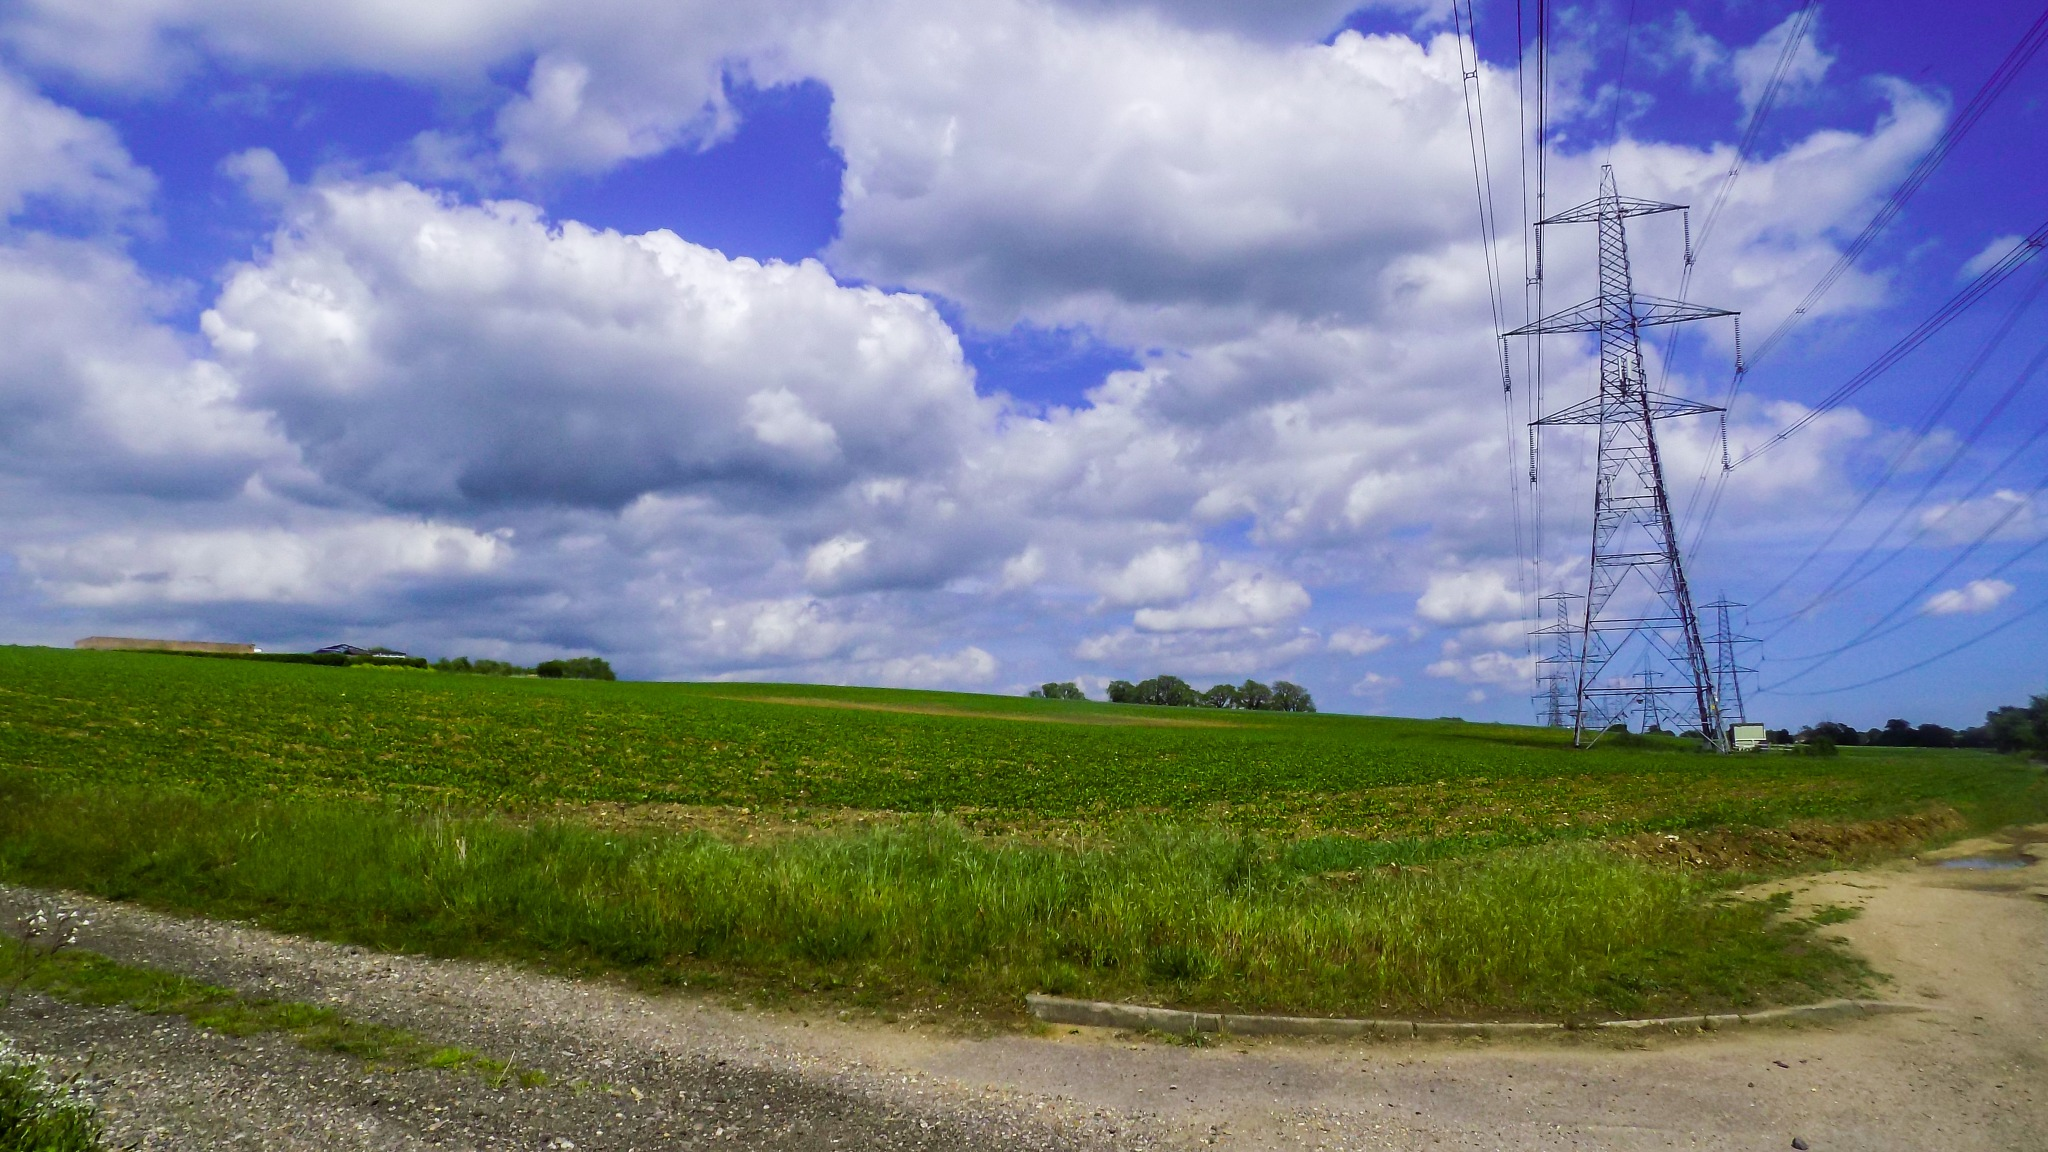 The Green Fields Of The Summer by LoganFrostPhotography